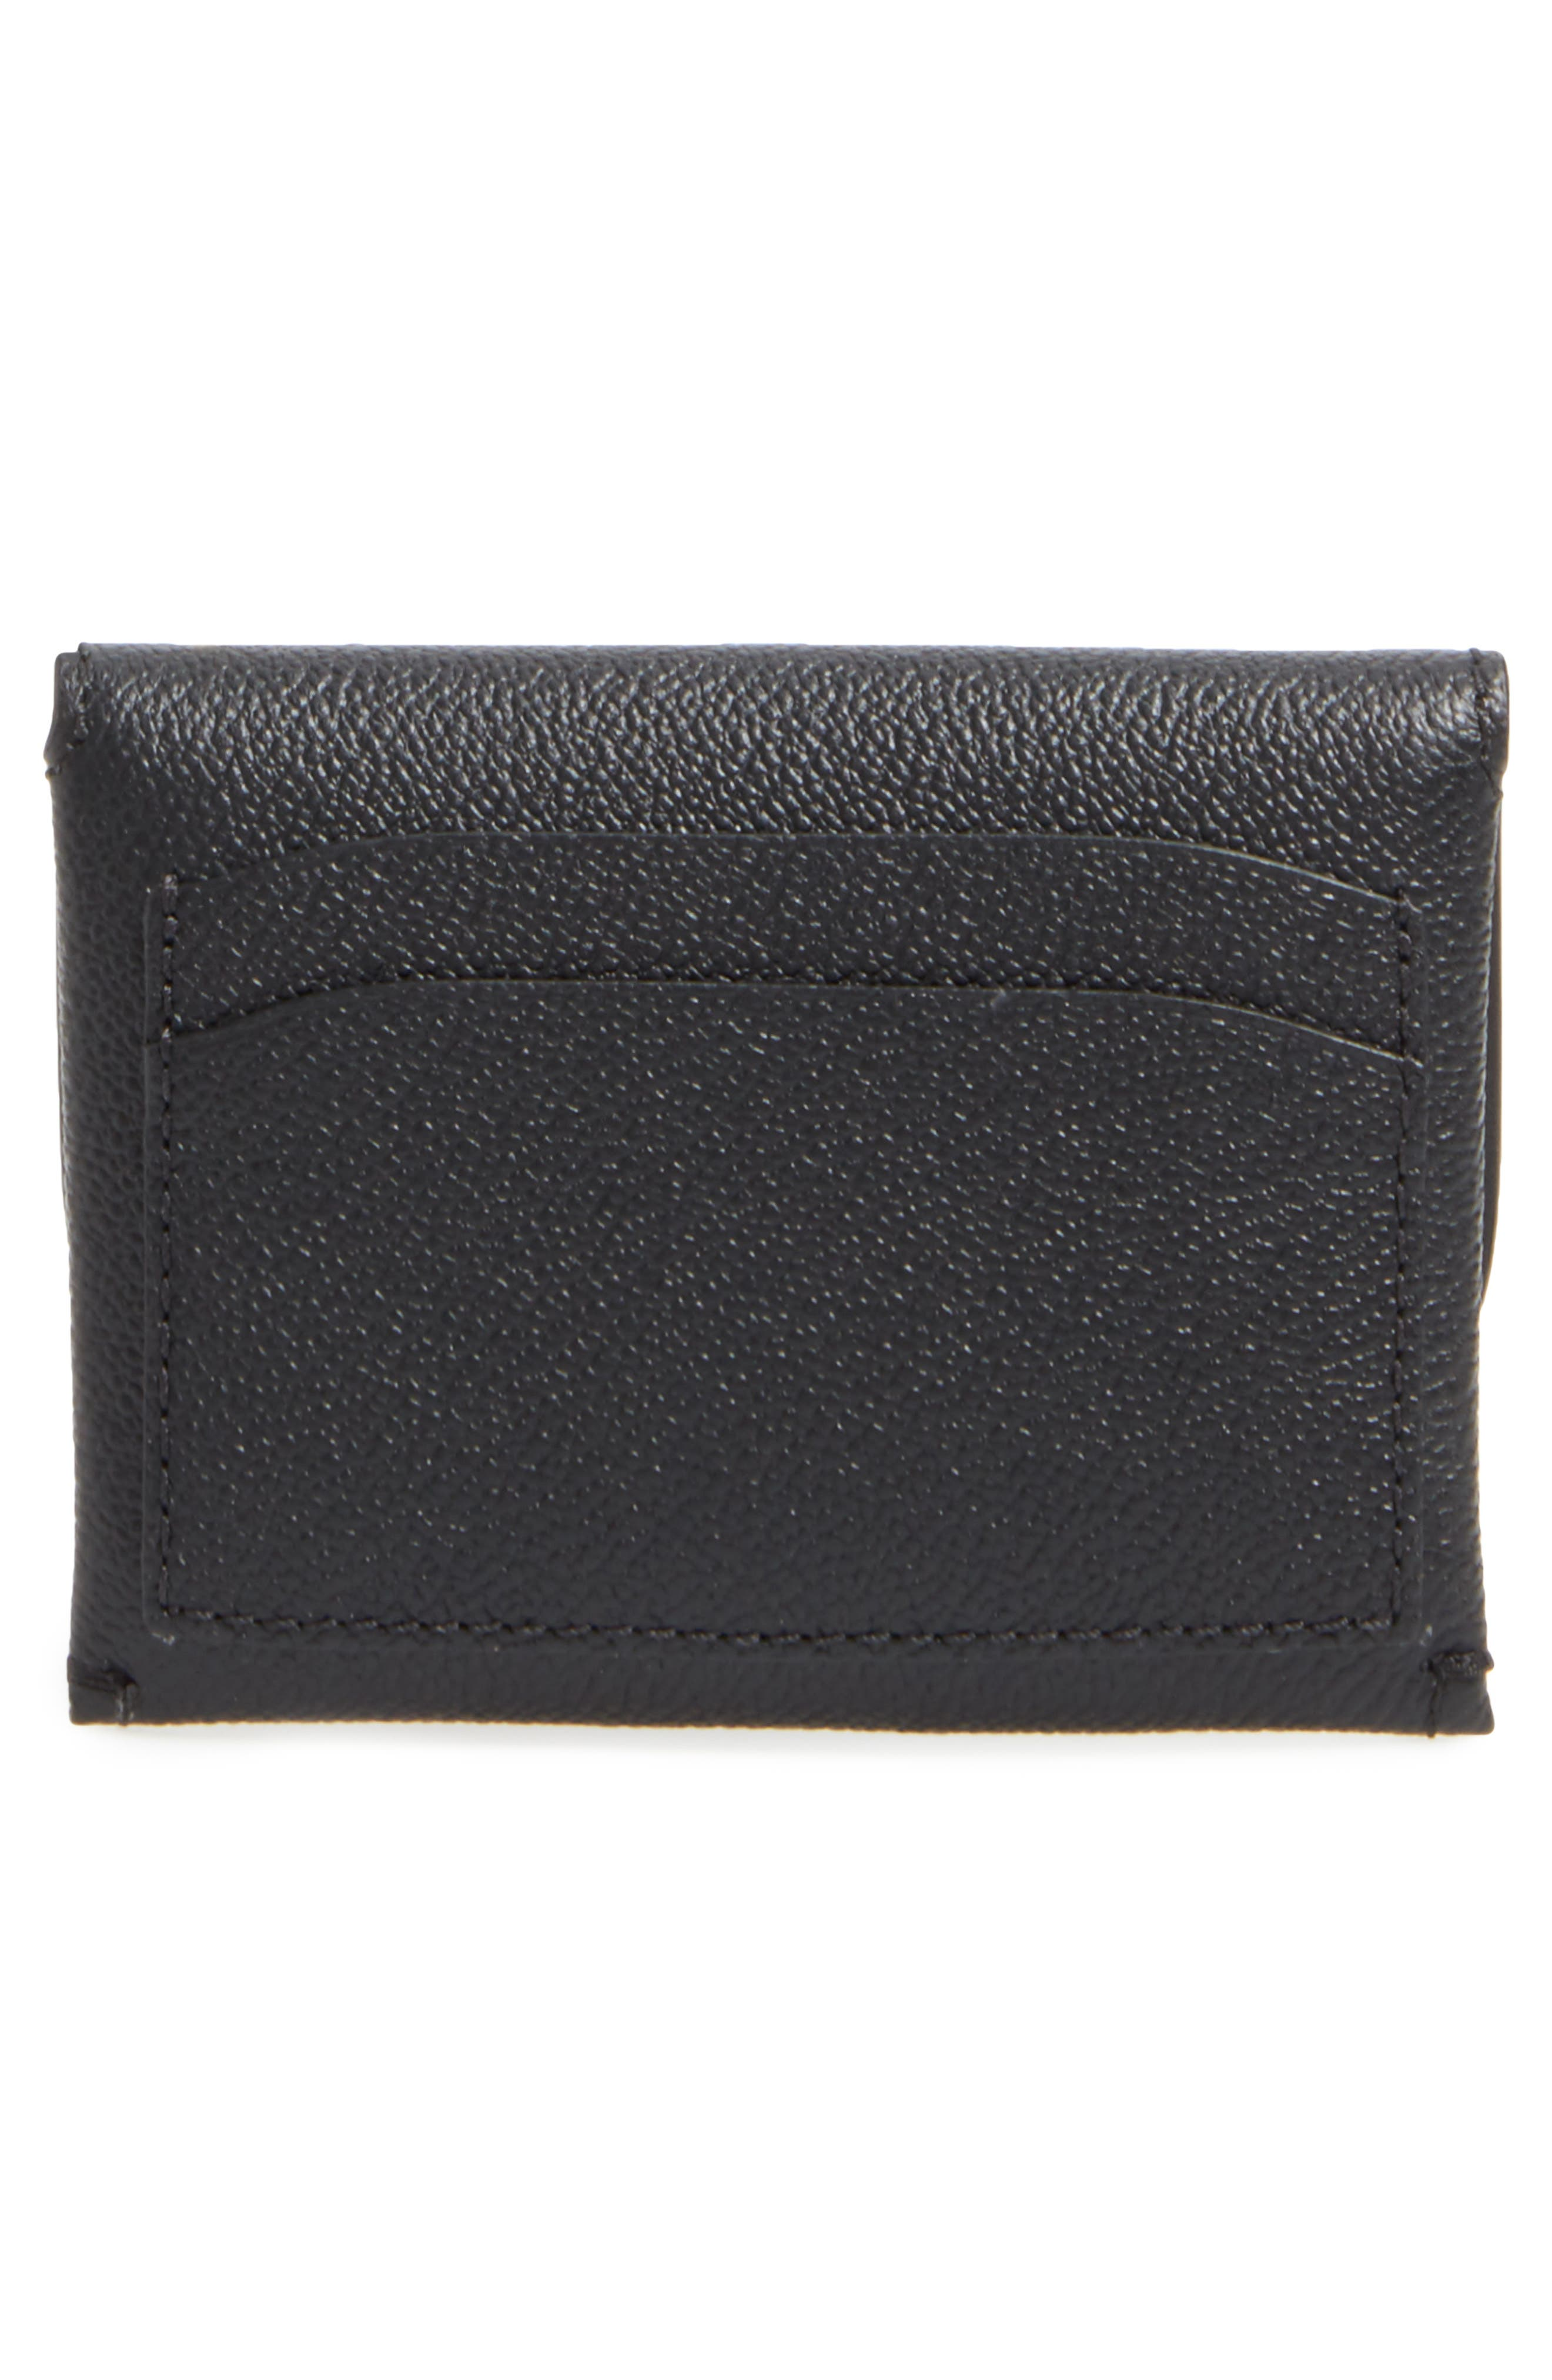 Mayfield Leather Card Case,                             Alternate thumbnail 3, color,                             001